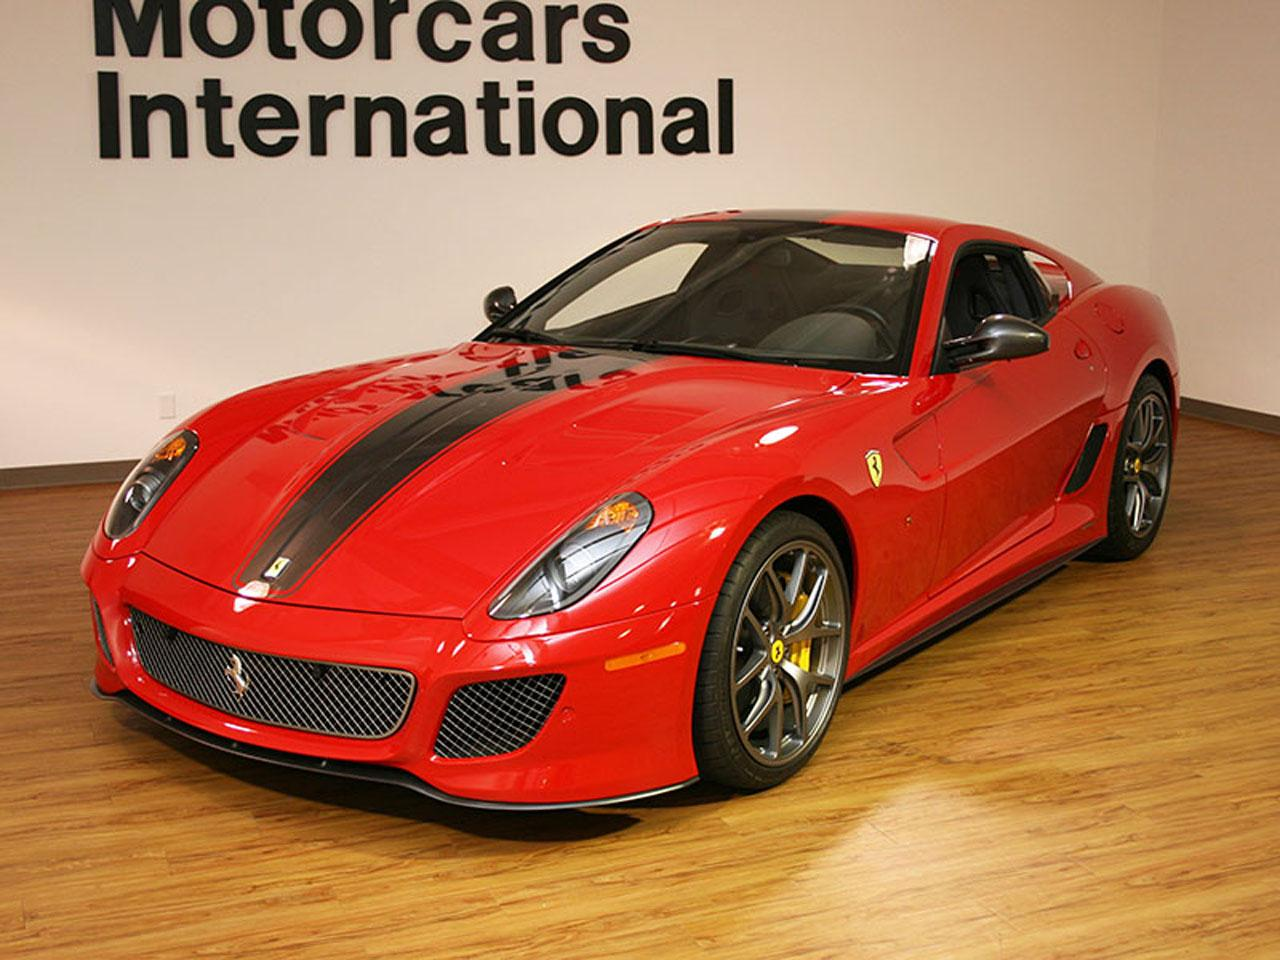 2011 ferrari 599 gto. Black Bedroom Furniture Sets. Home Design Ideas